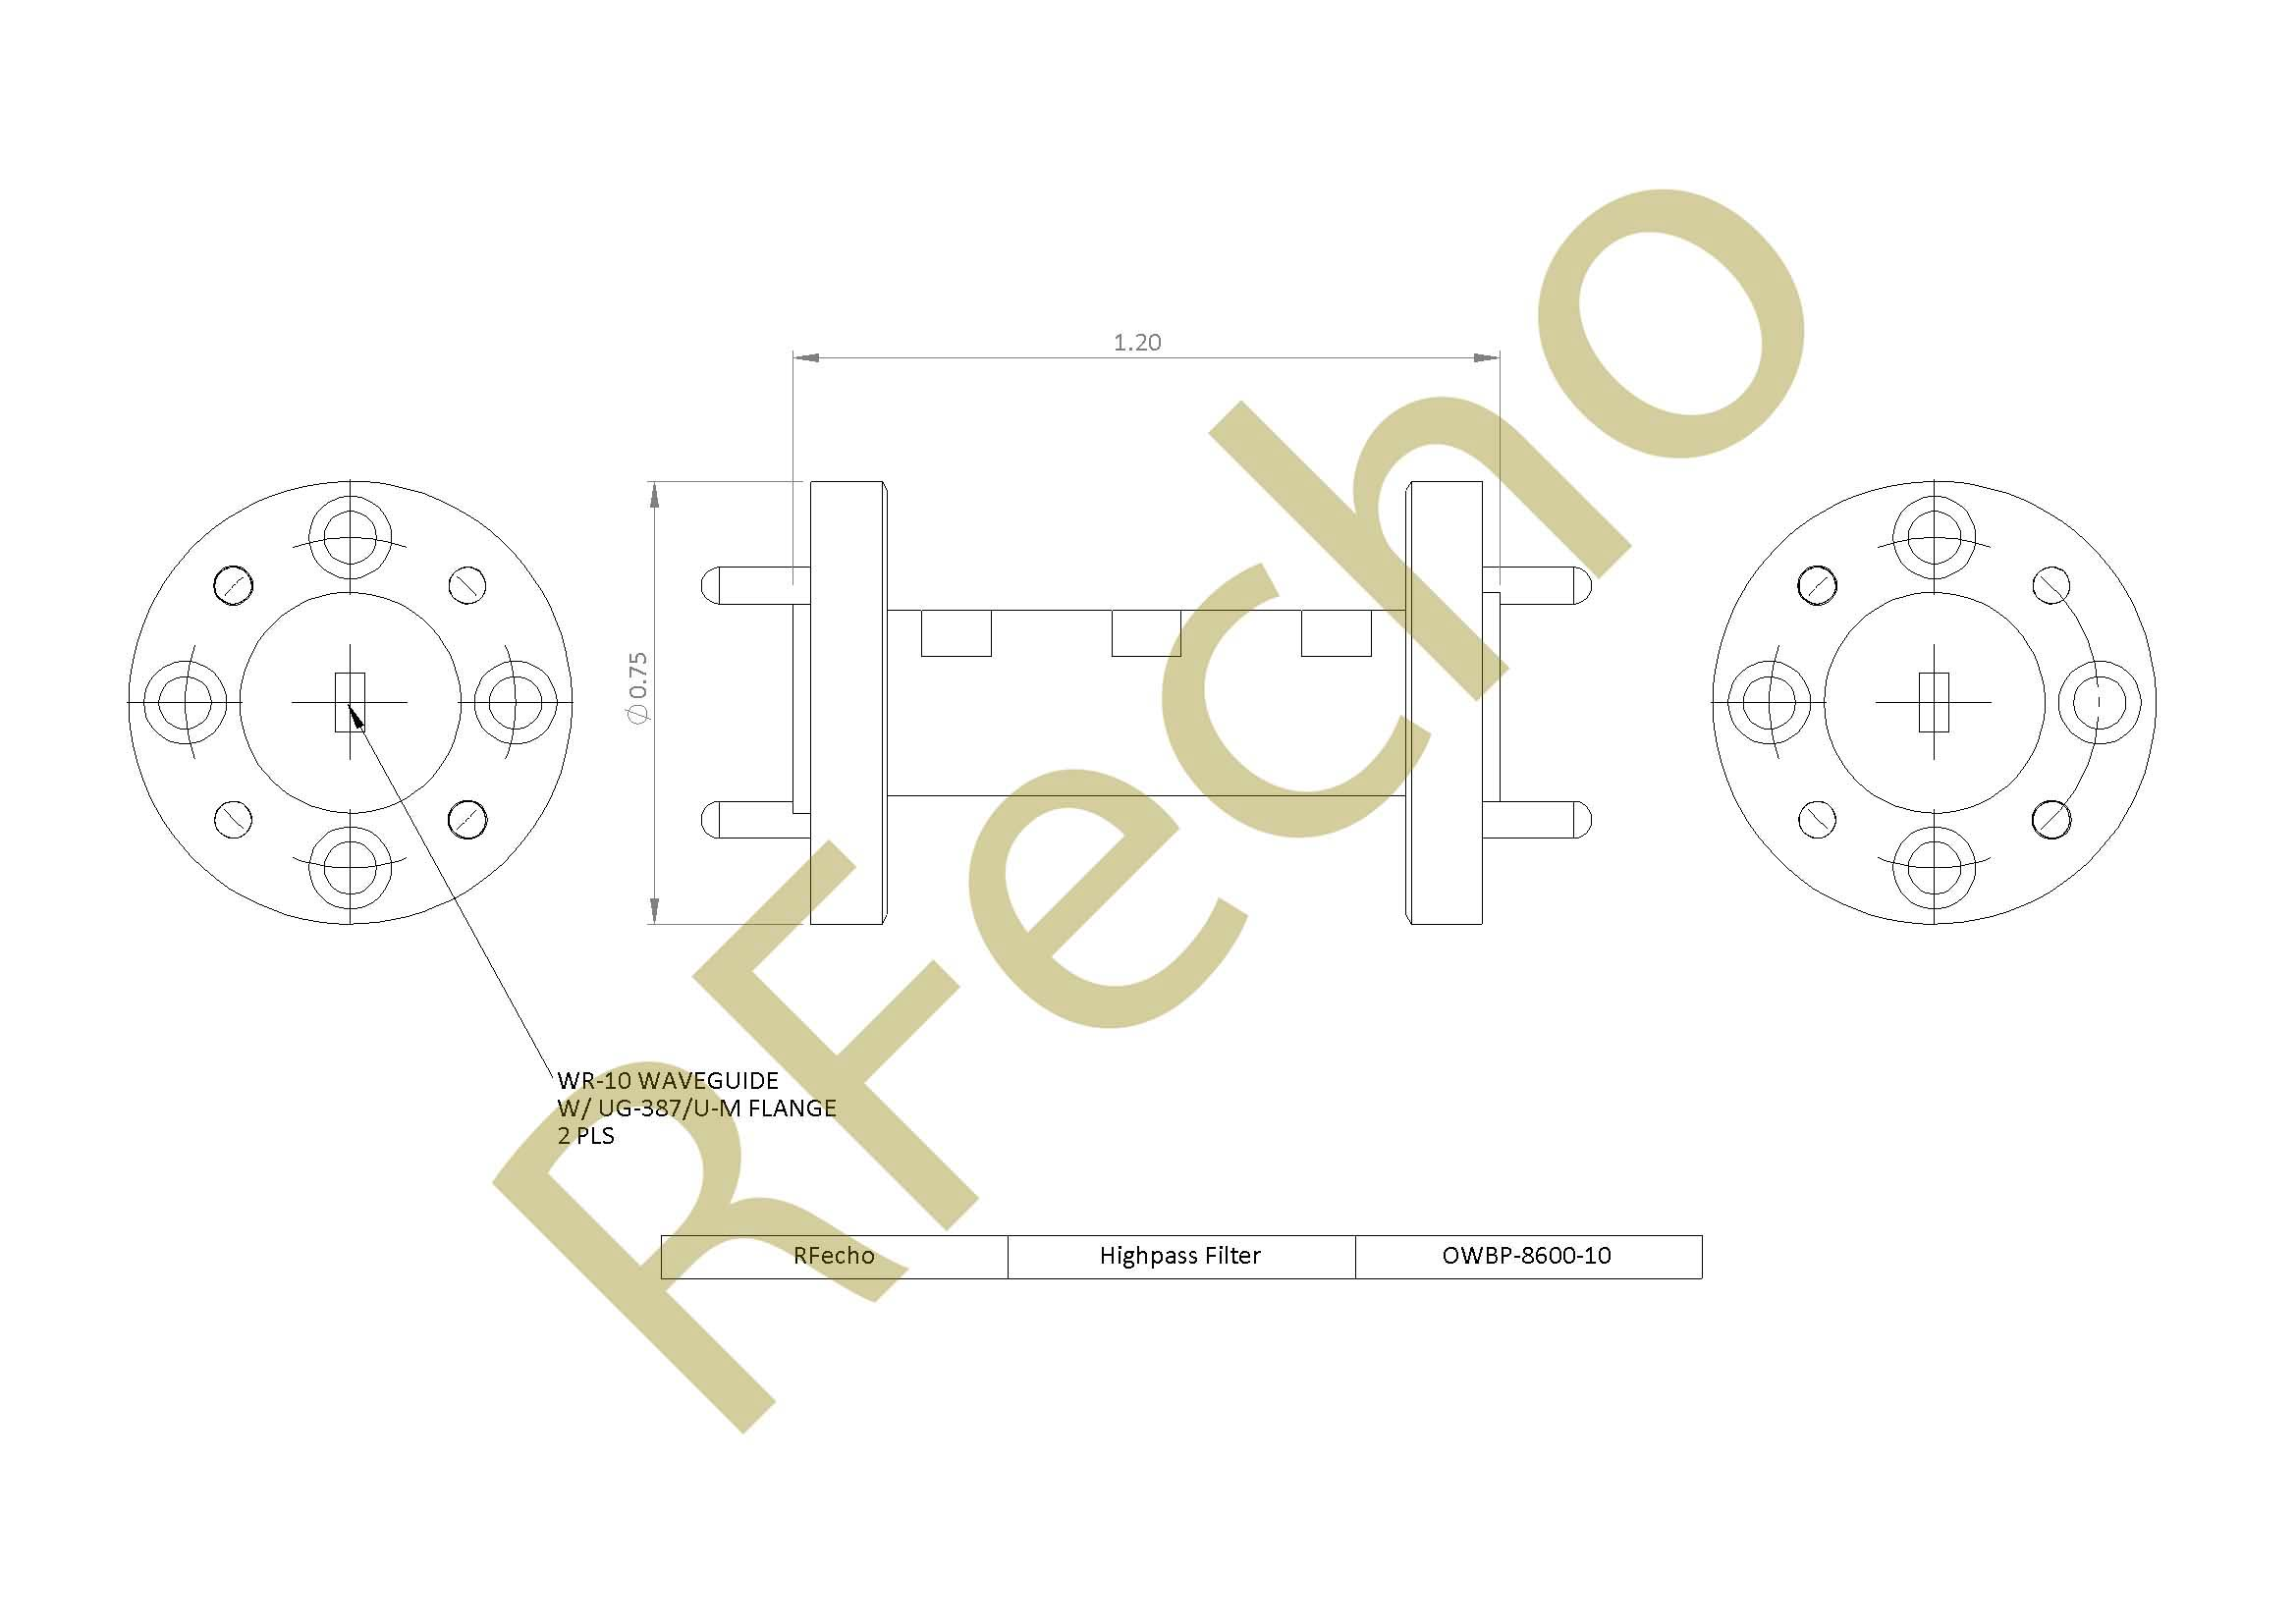 RF Microwave Filter 86GHz High Pass Filter rejection 40dB DC-82GHz